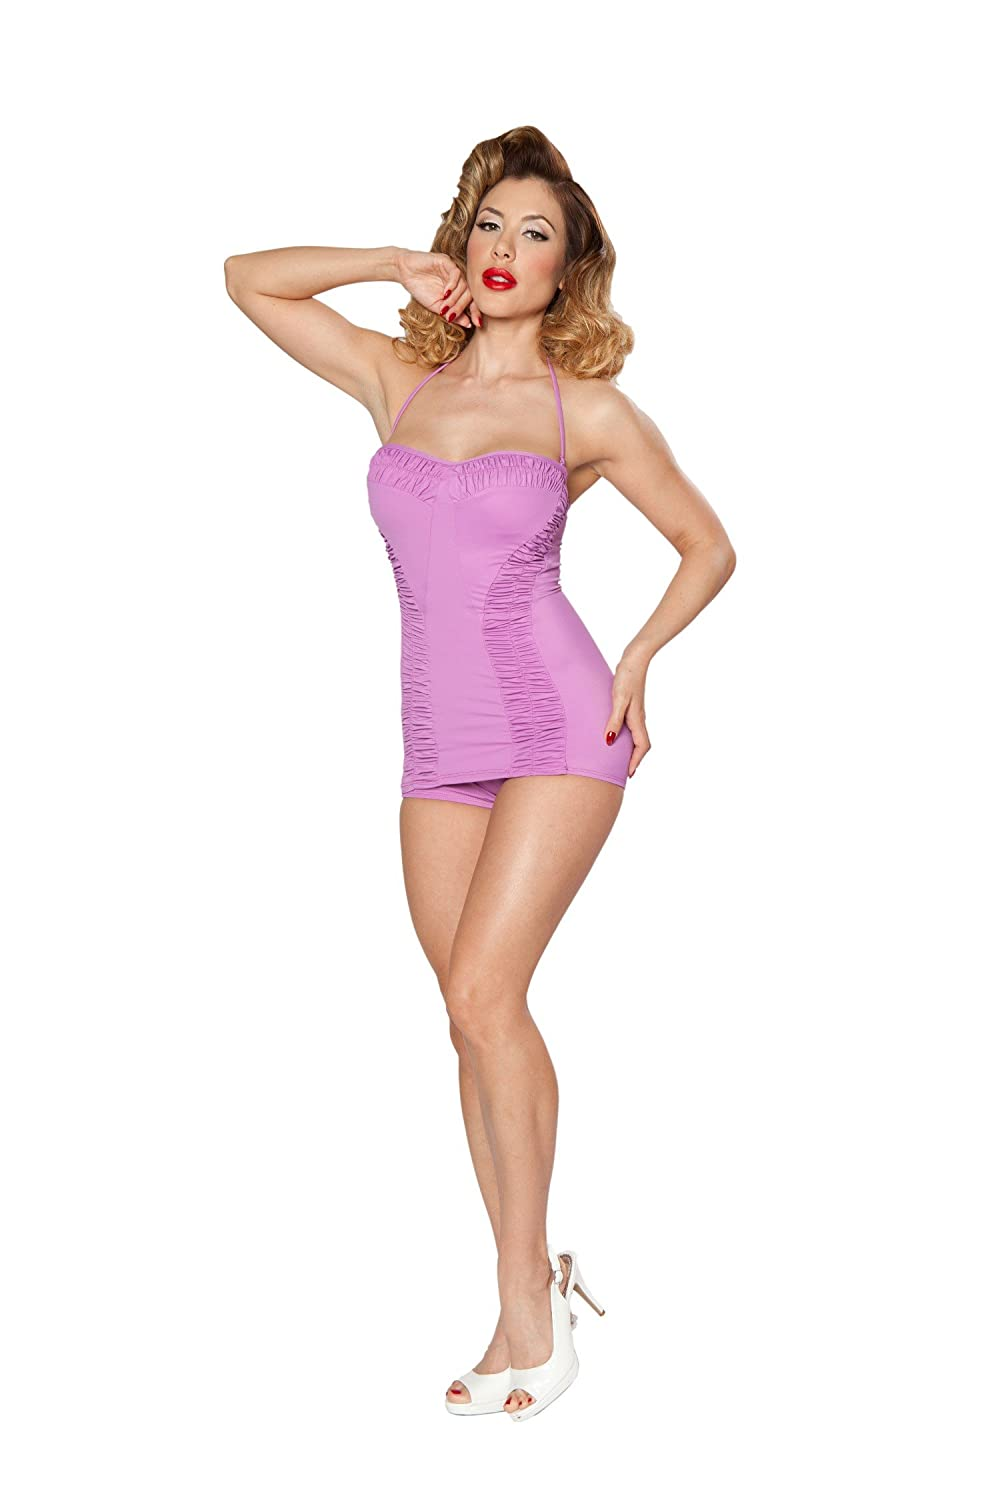 1acee22074e Bettie Page Swimsuit one Piece Orchid Ruched Sheath (6) at Amazon Women s  Clothing store